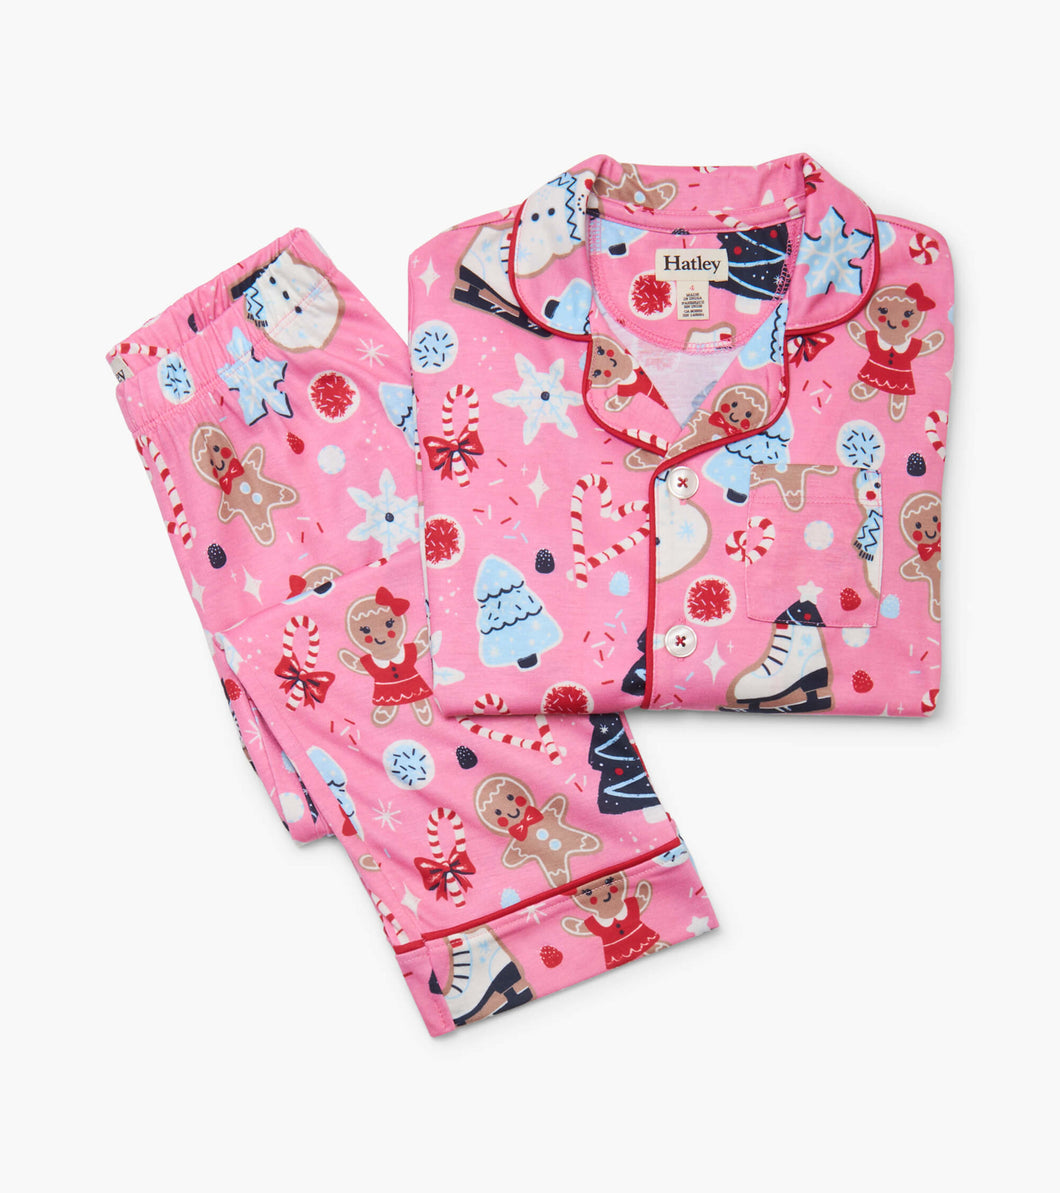 Sugar Rush Pajamas by Hatley